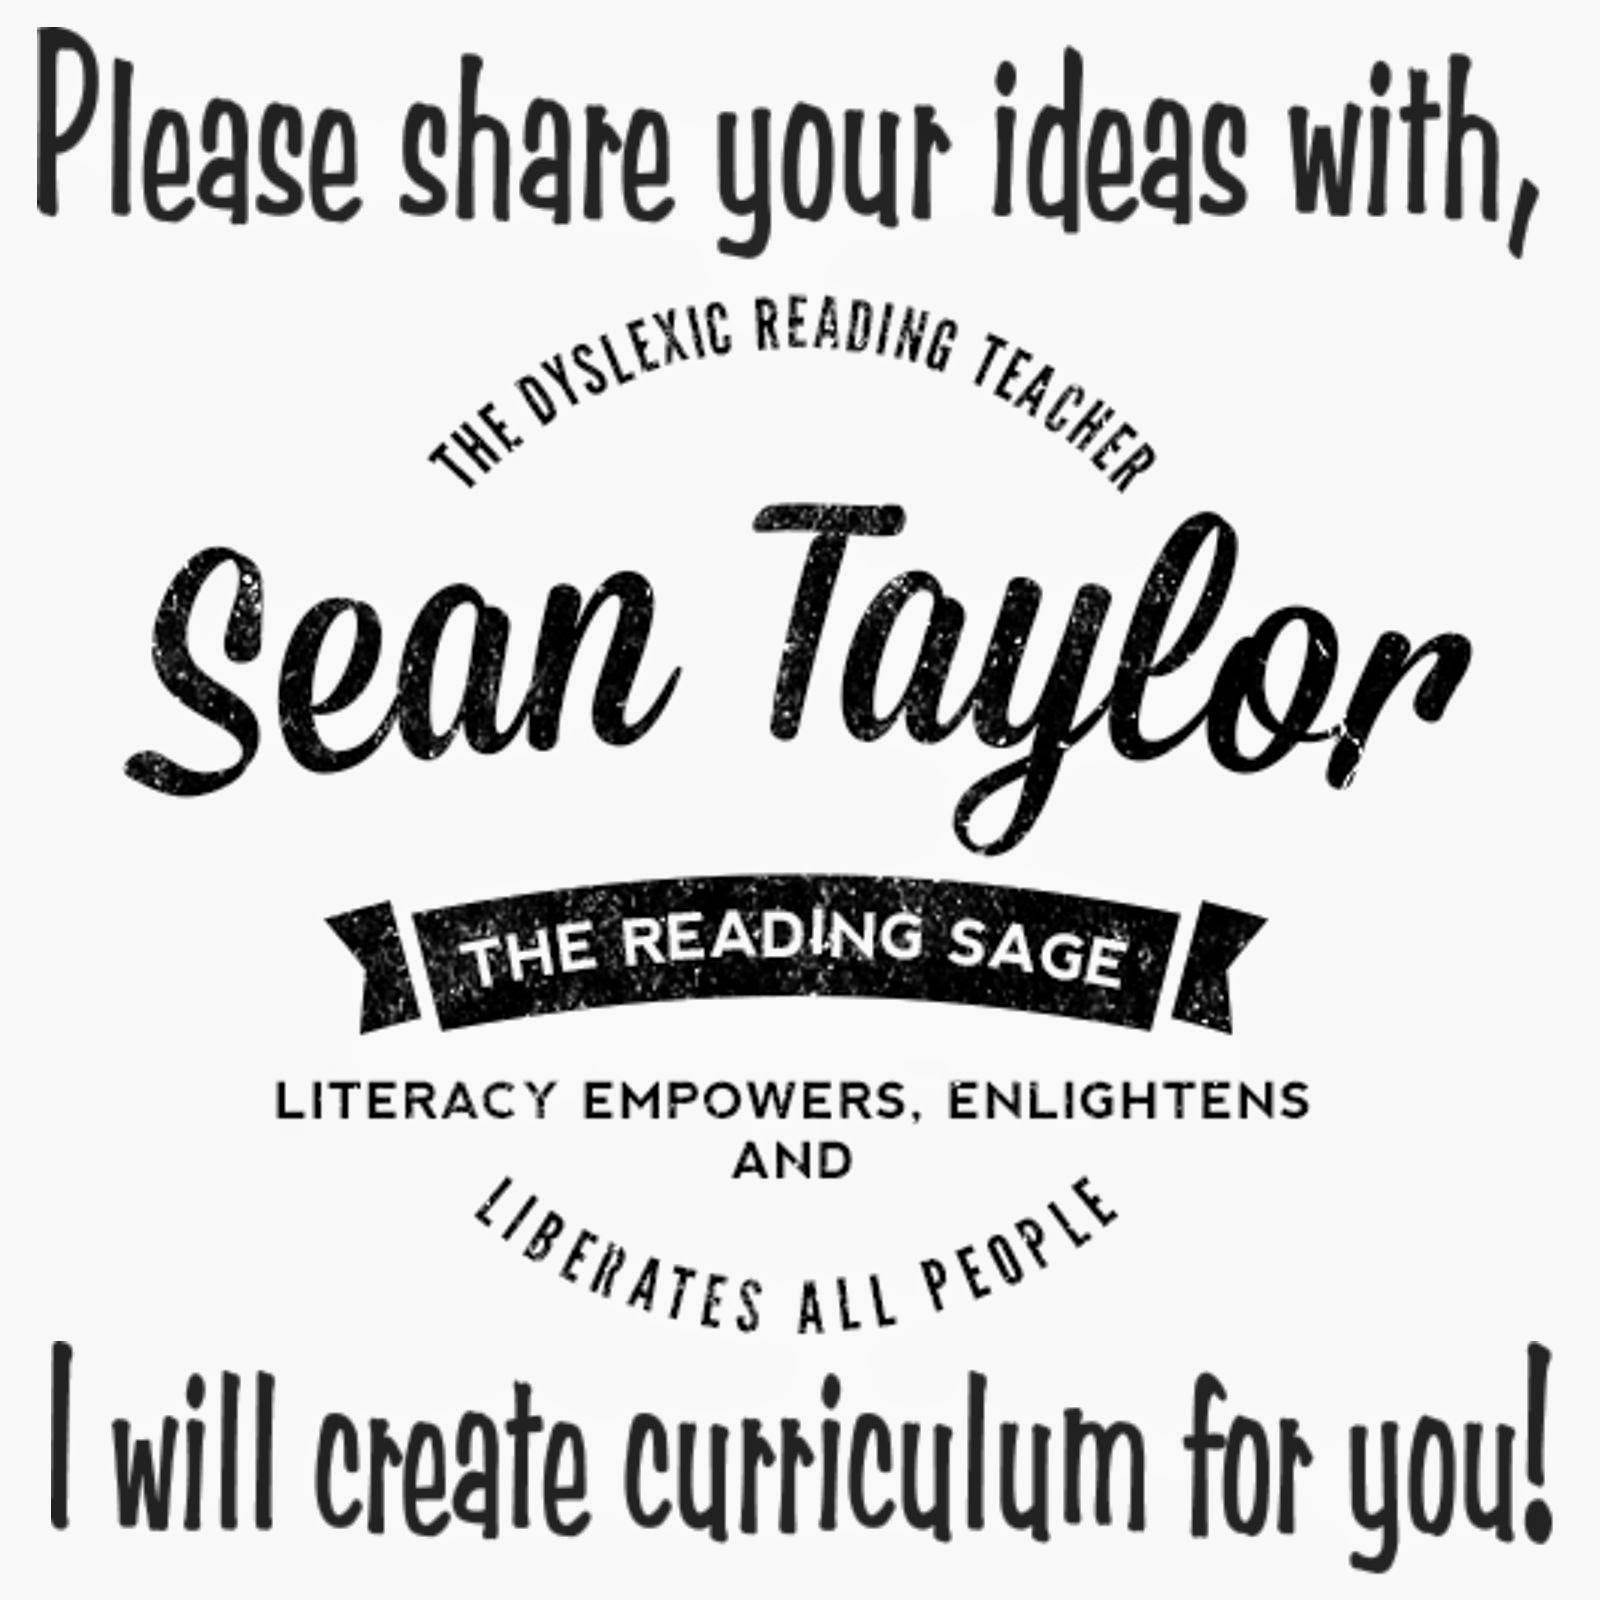 Please Share Your Curriculum Ideas!